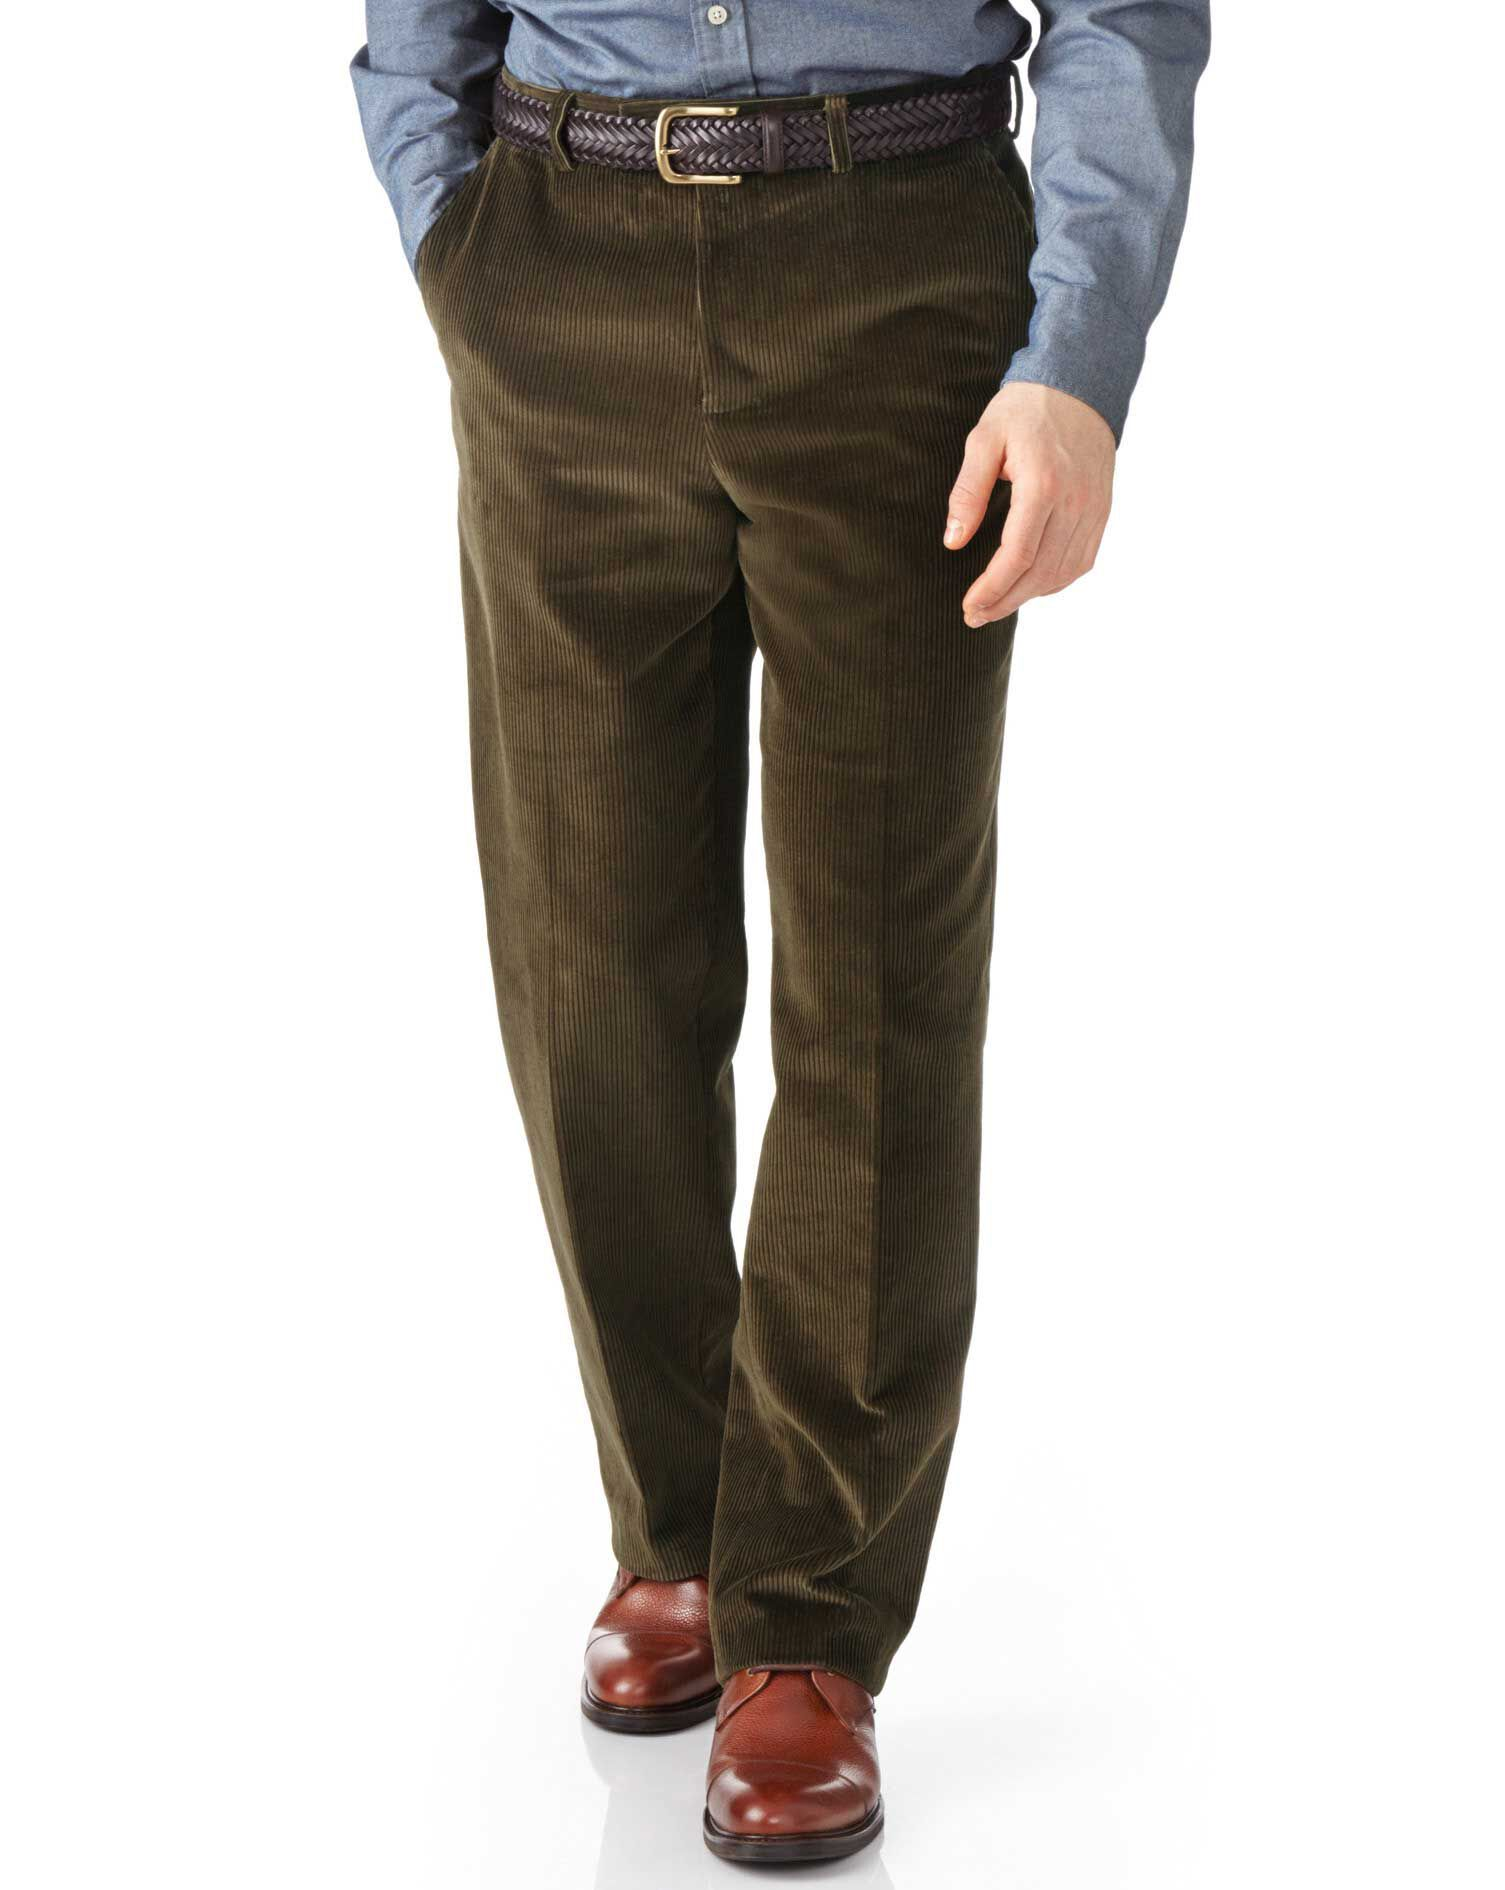 Olive Classic Fit Jumbo Cord Trousers Size W32 L30 by Charles Tyrwhitt